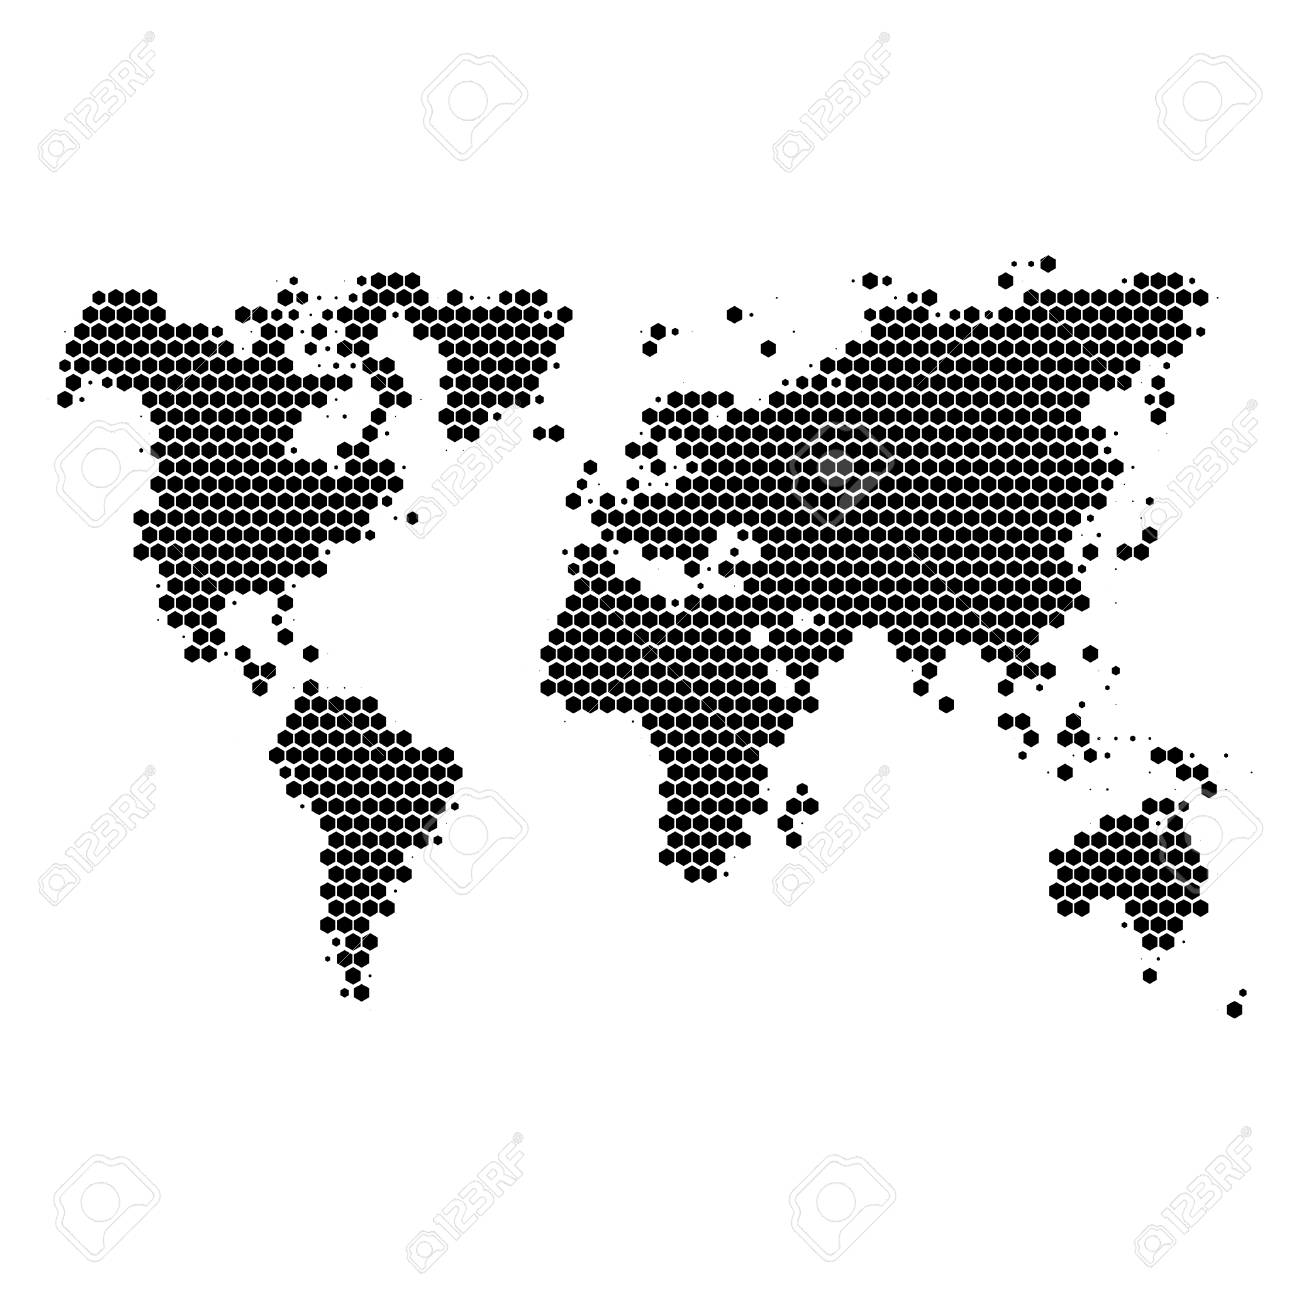 Monochrome halftone world map royalty free cliparts vectors and monochrome halftone world map stock vector 64270868 gumiabroncs Gallery